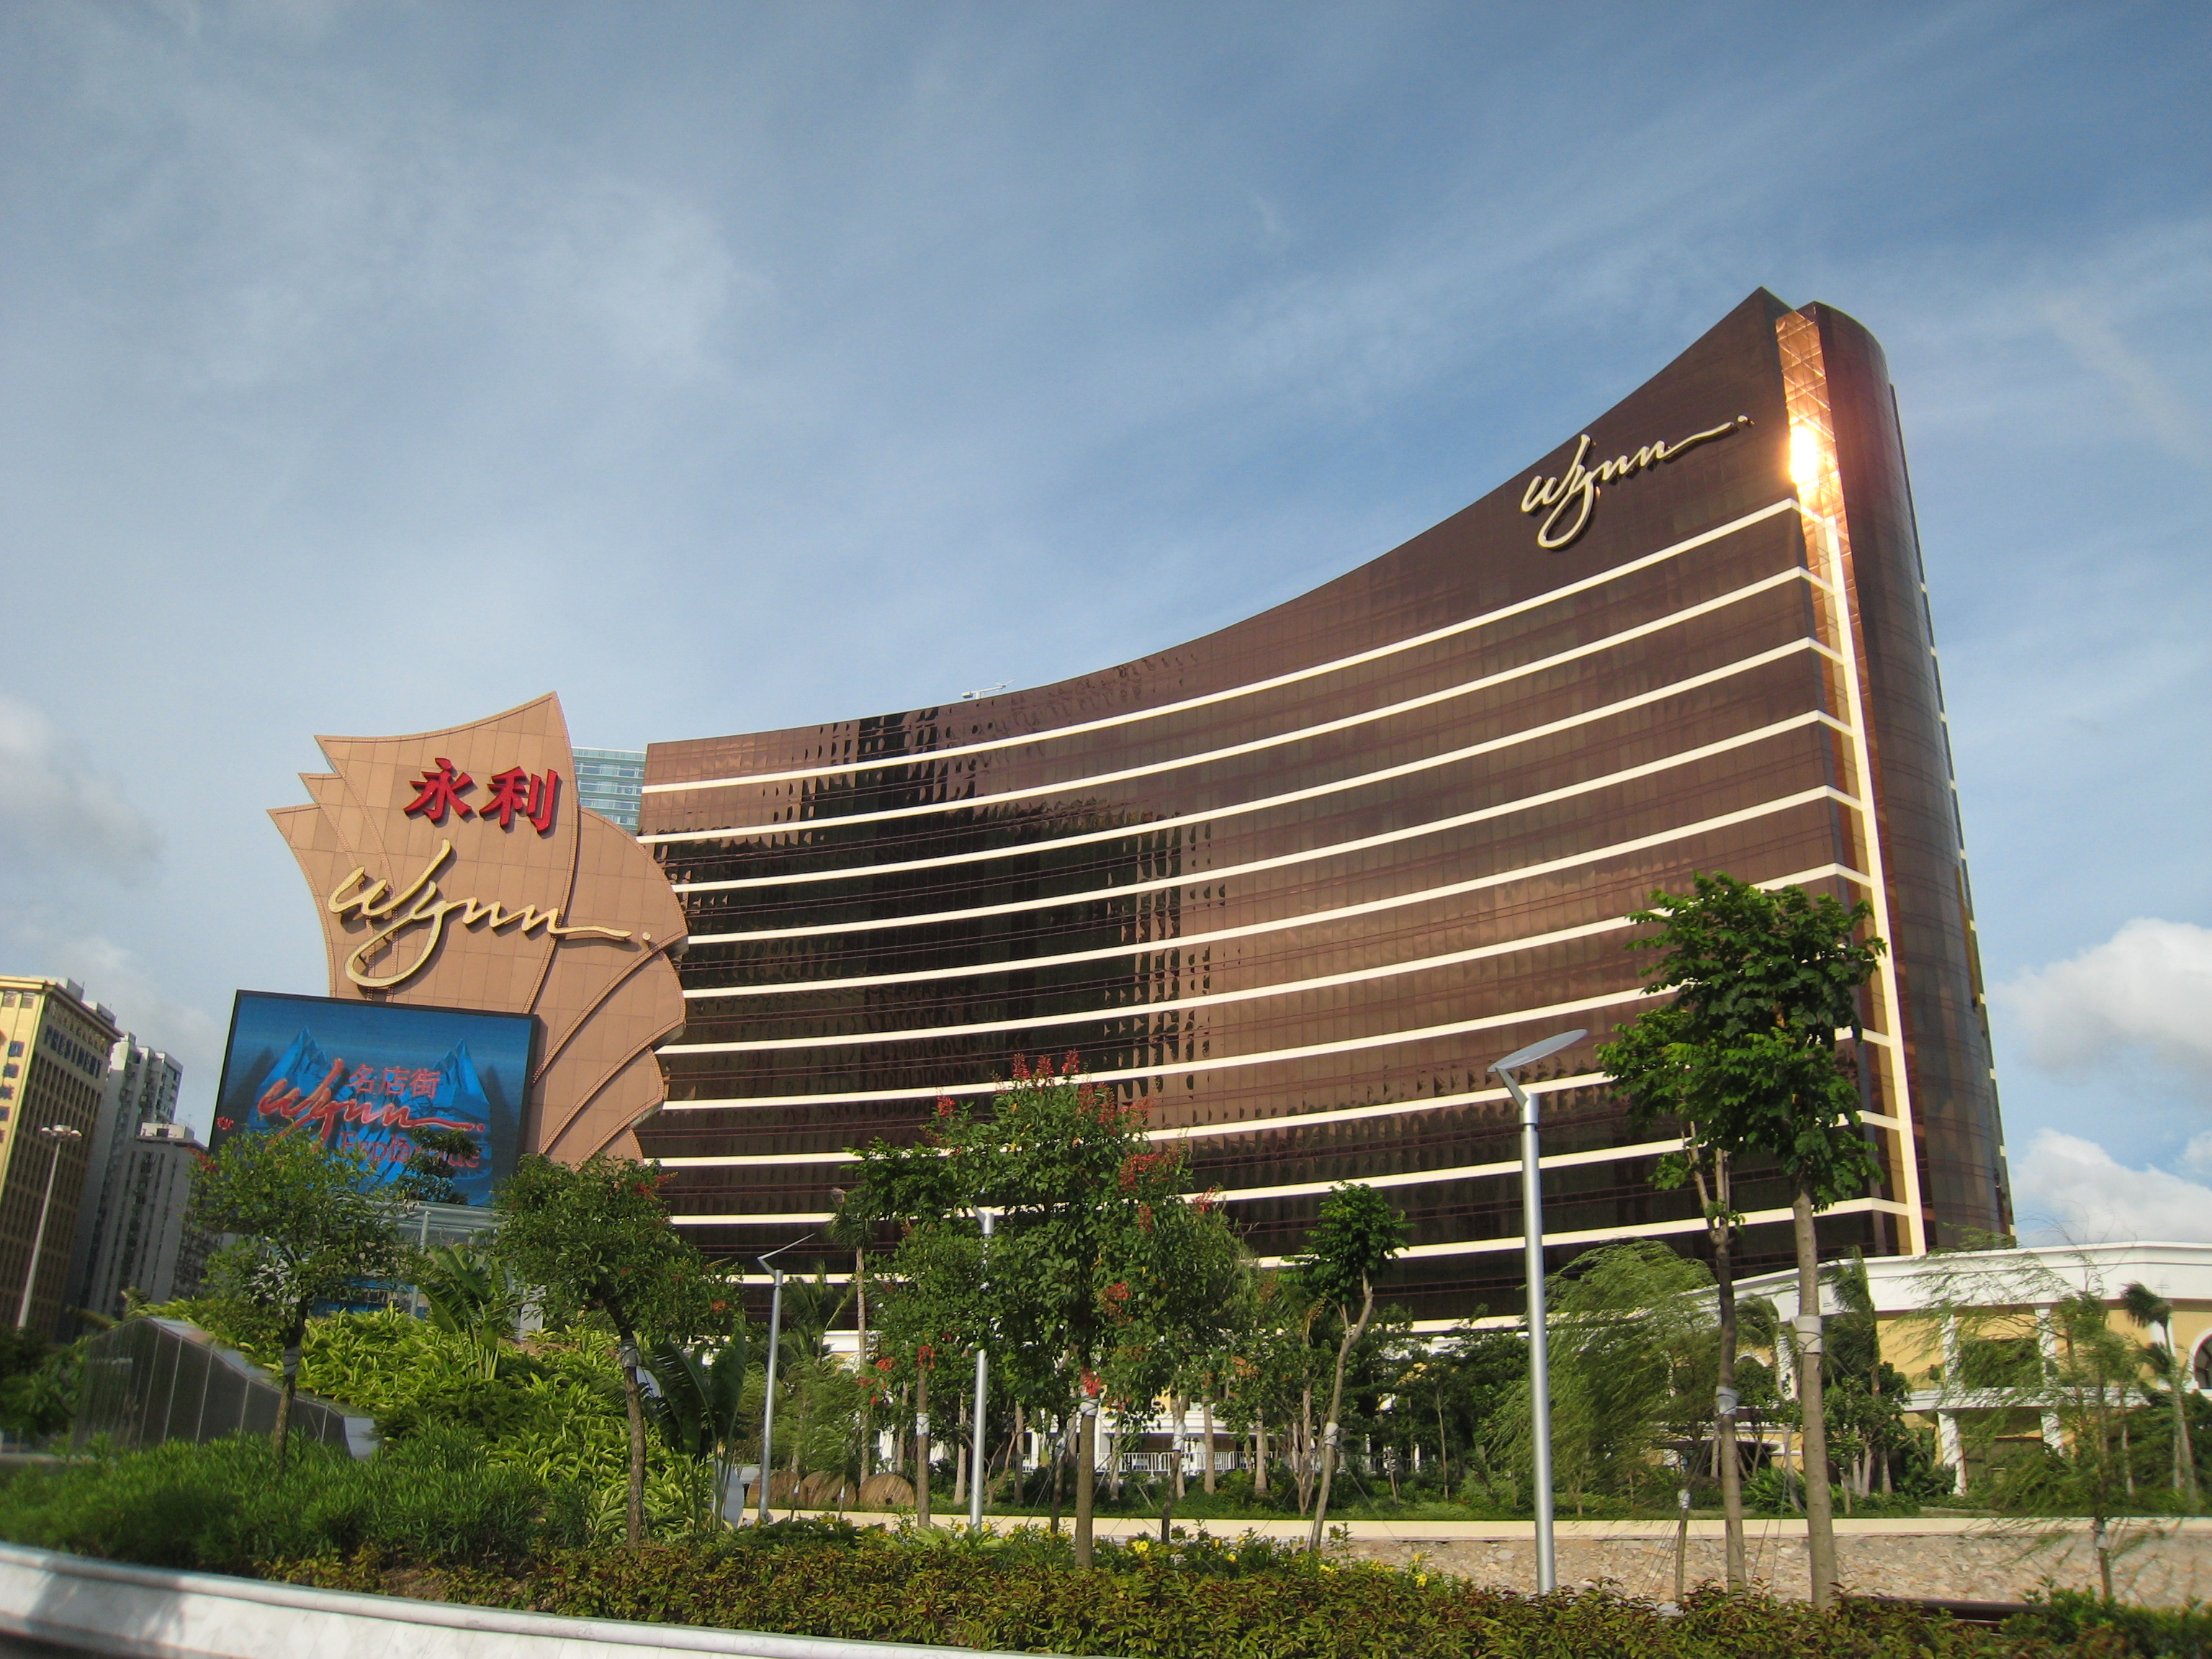 Wynn Resort, Macau